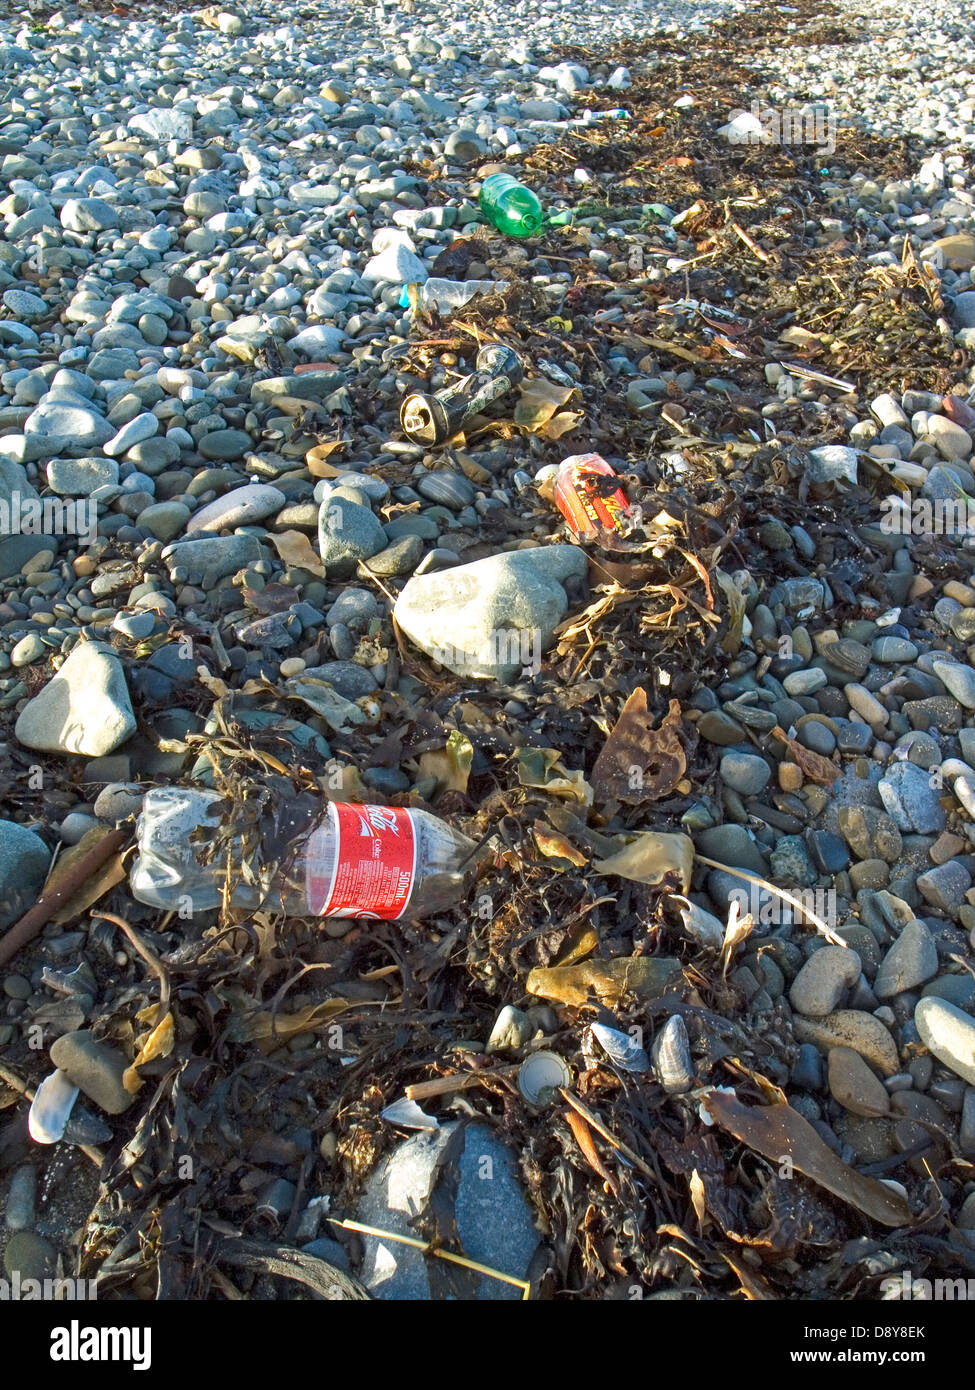 Plastic bottles and other refuse caught up in the seaweed on an Irish Beach Stock Photo